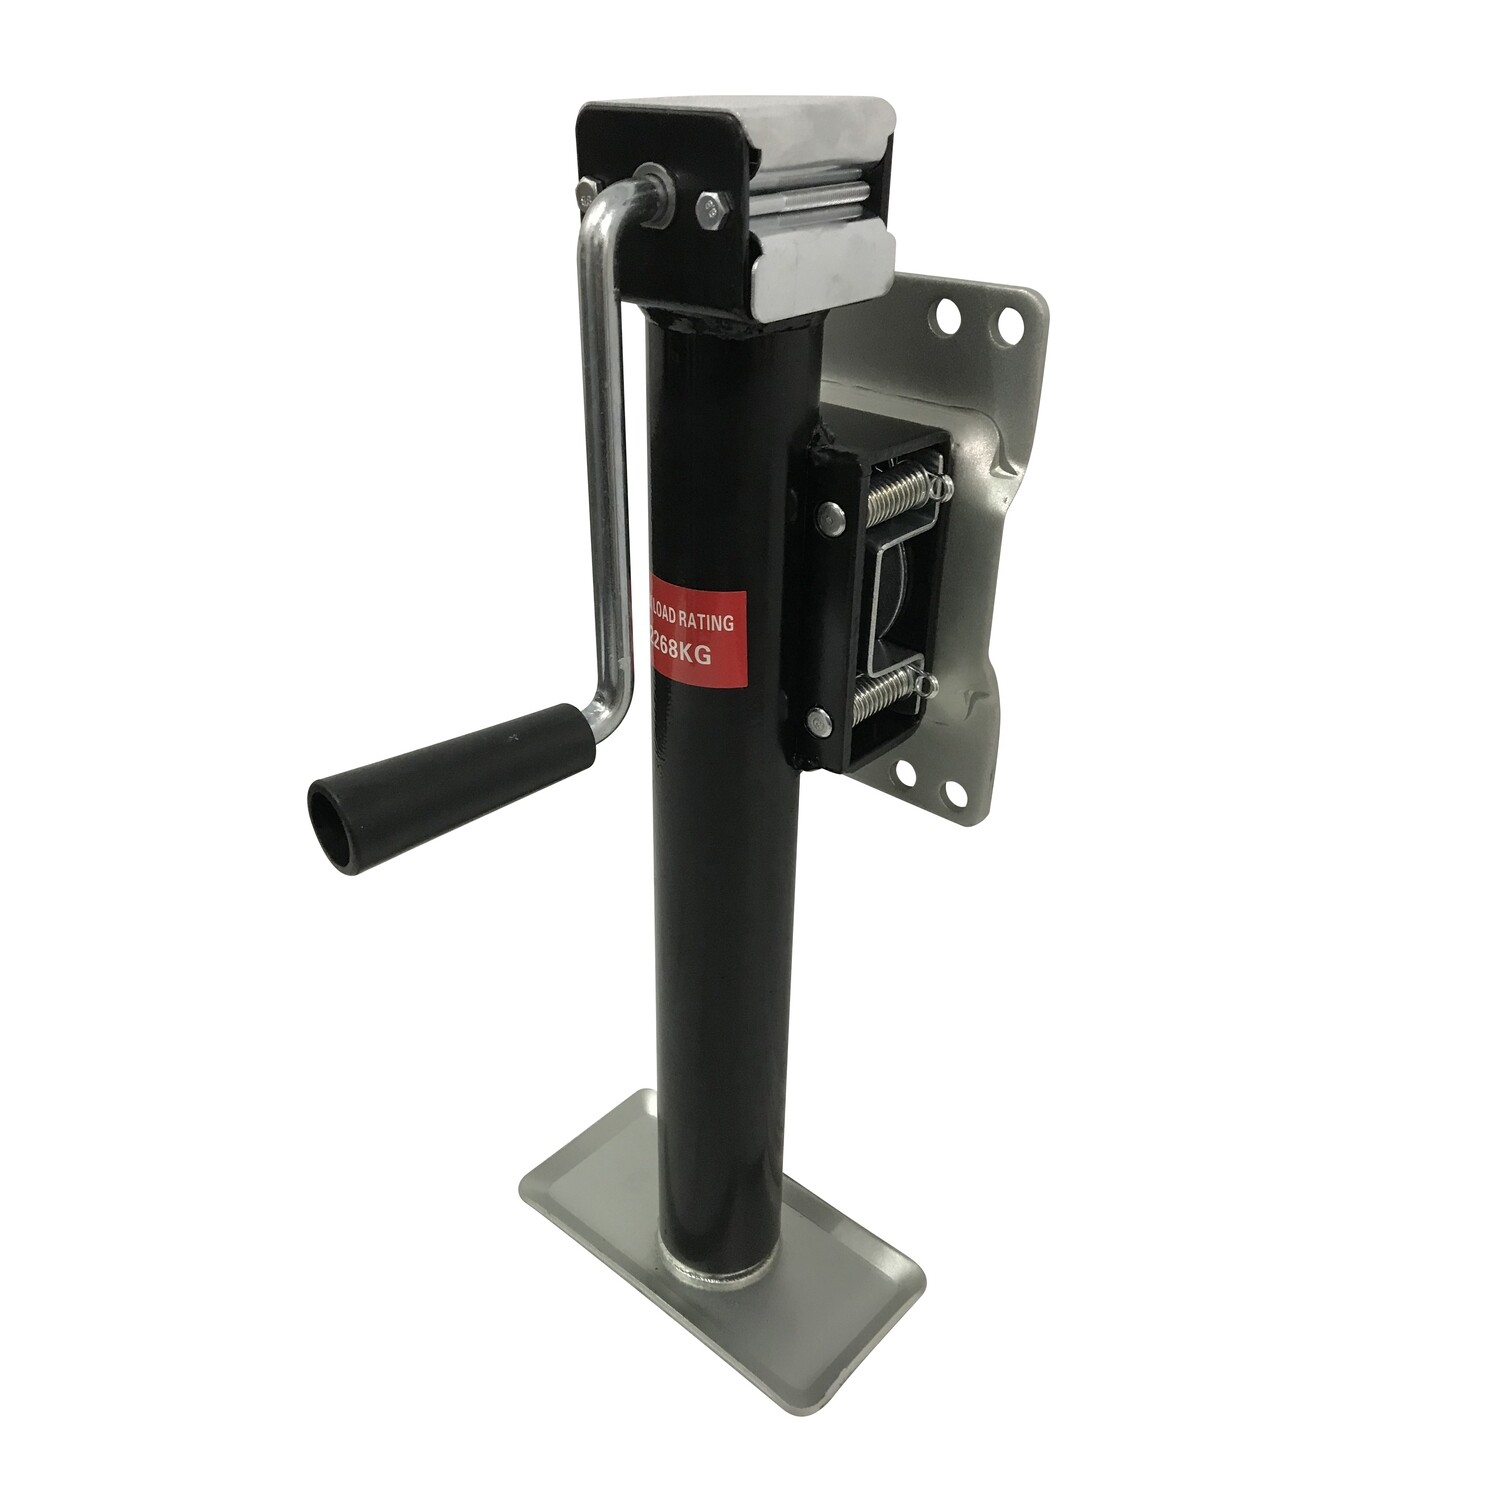 2267kg Caravan Trailer Manual Jack Stand with draw bar fitment